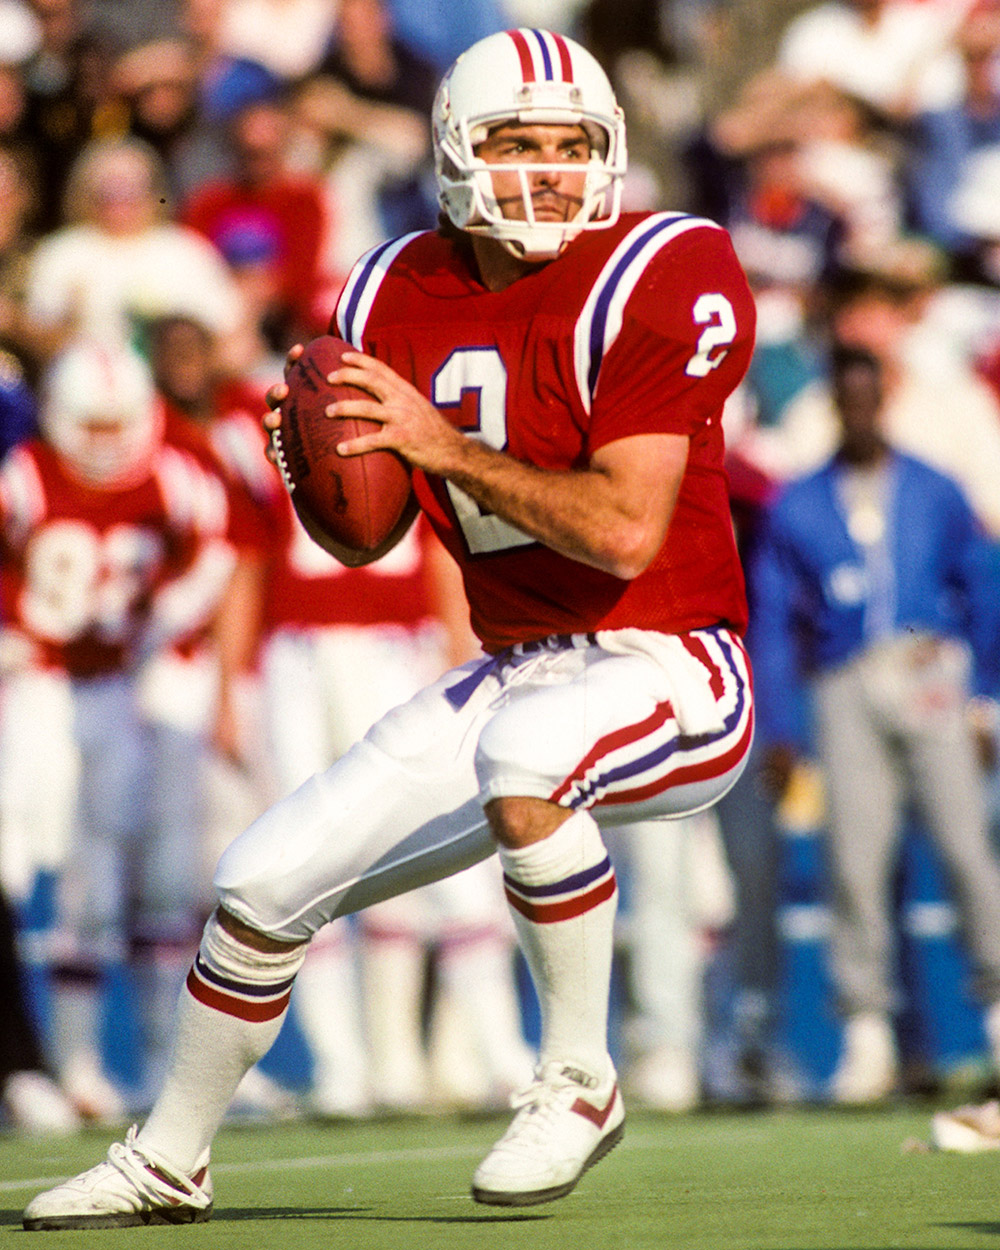 Doug Flutie | The Canadian Encyclopedia